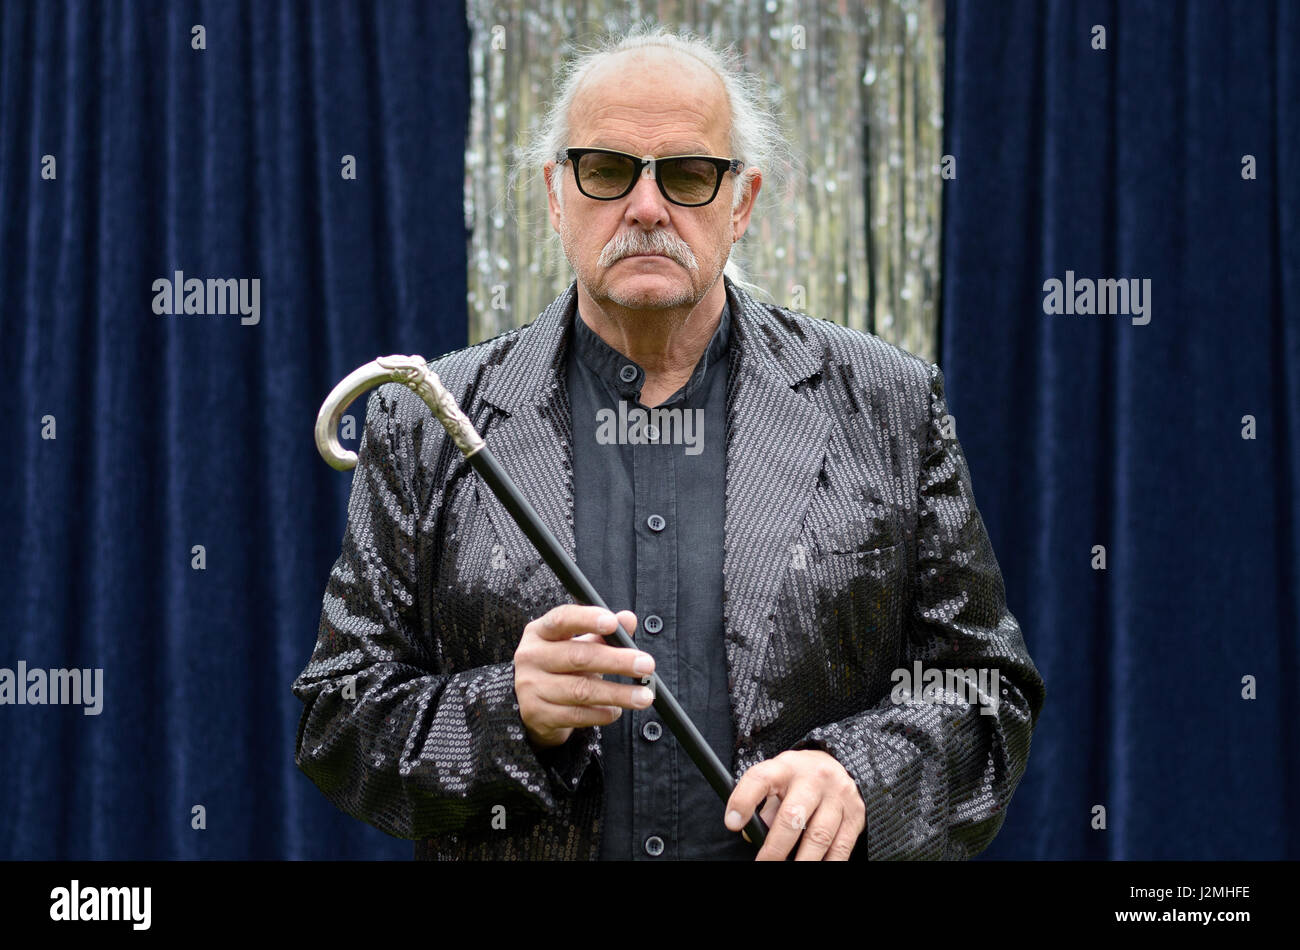 Deadpan stage performer in heavy rimmed glasses and jacket standing in front of blue curtains holding a silver topped - Stock Image